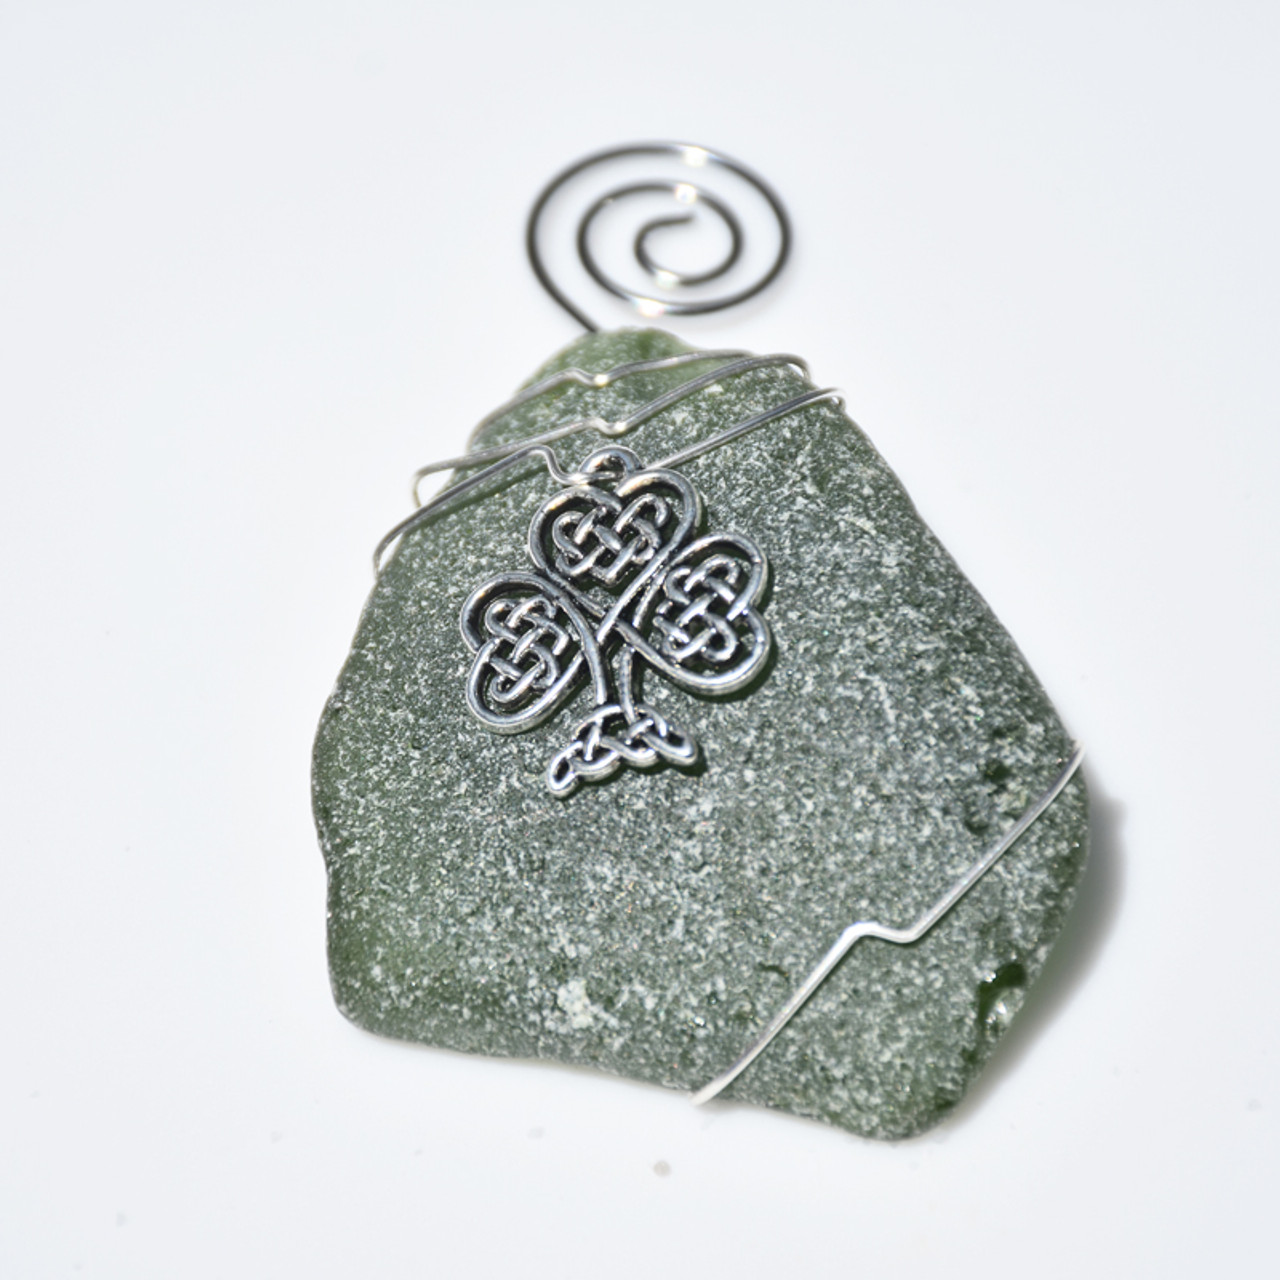 Celtic Knot Shamrock Charm on a Surf Tumbled Sea Glass Ornament Perfect for St Patrick's Day - Choose Your Color Sea Glass Frosted, Green, and Brown - Made to Order